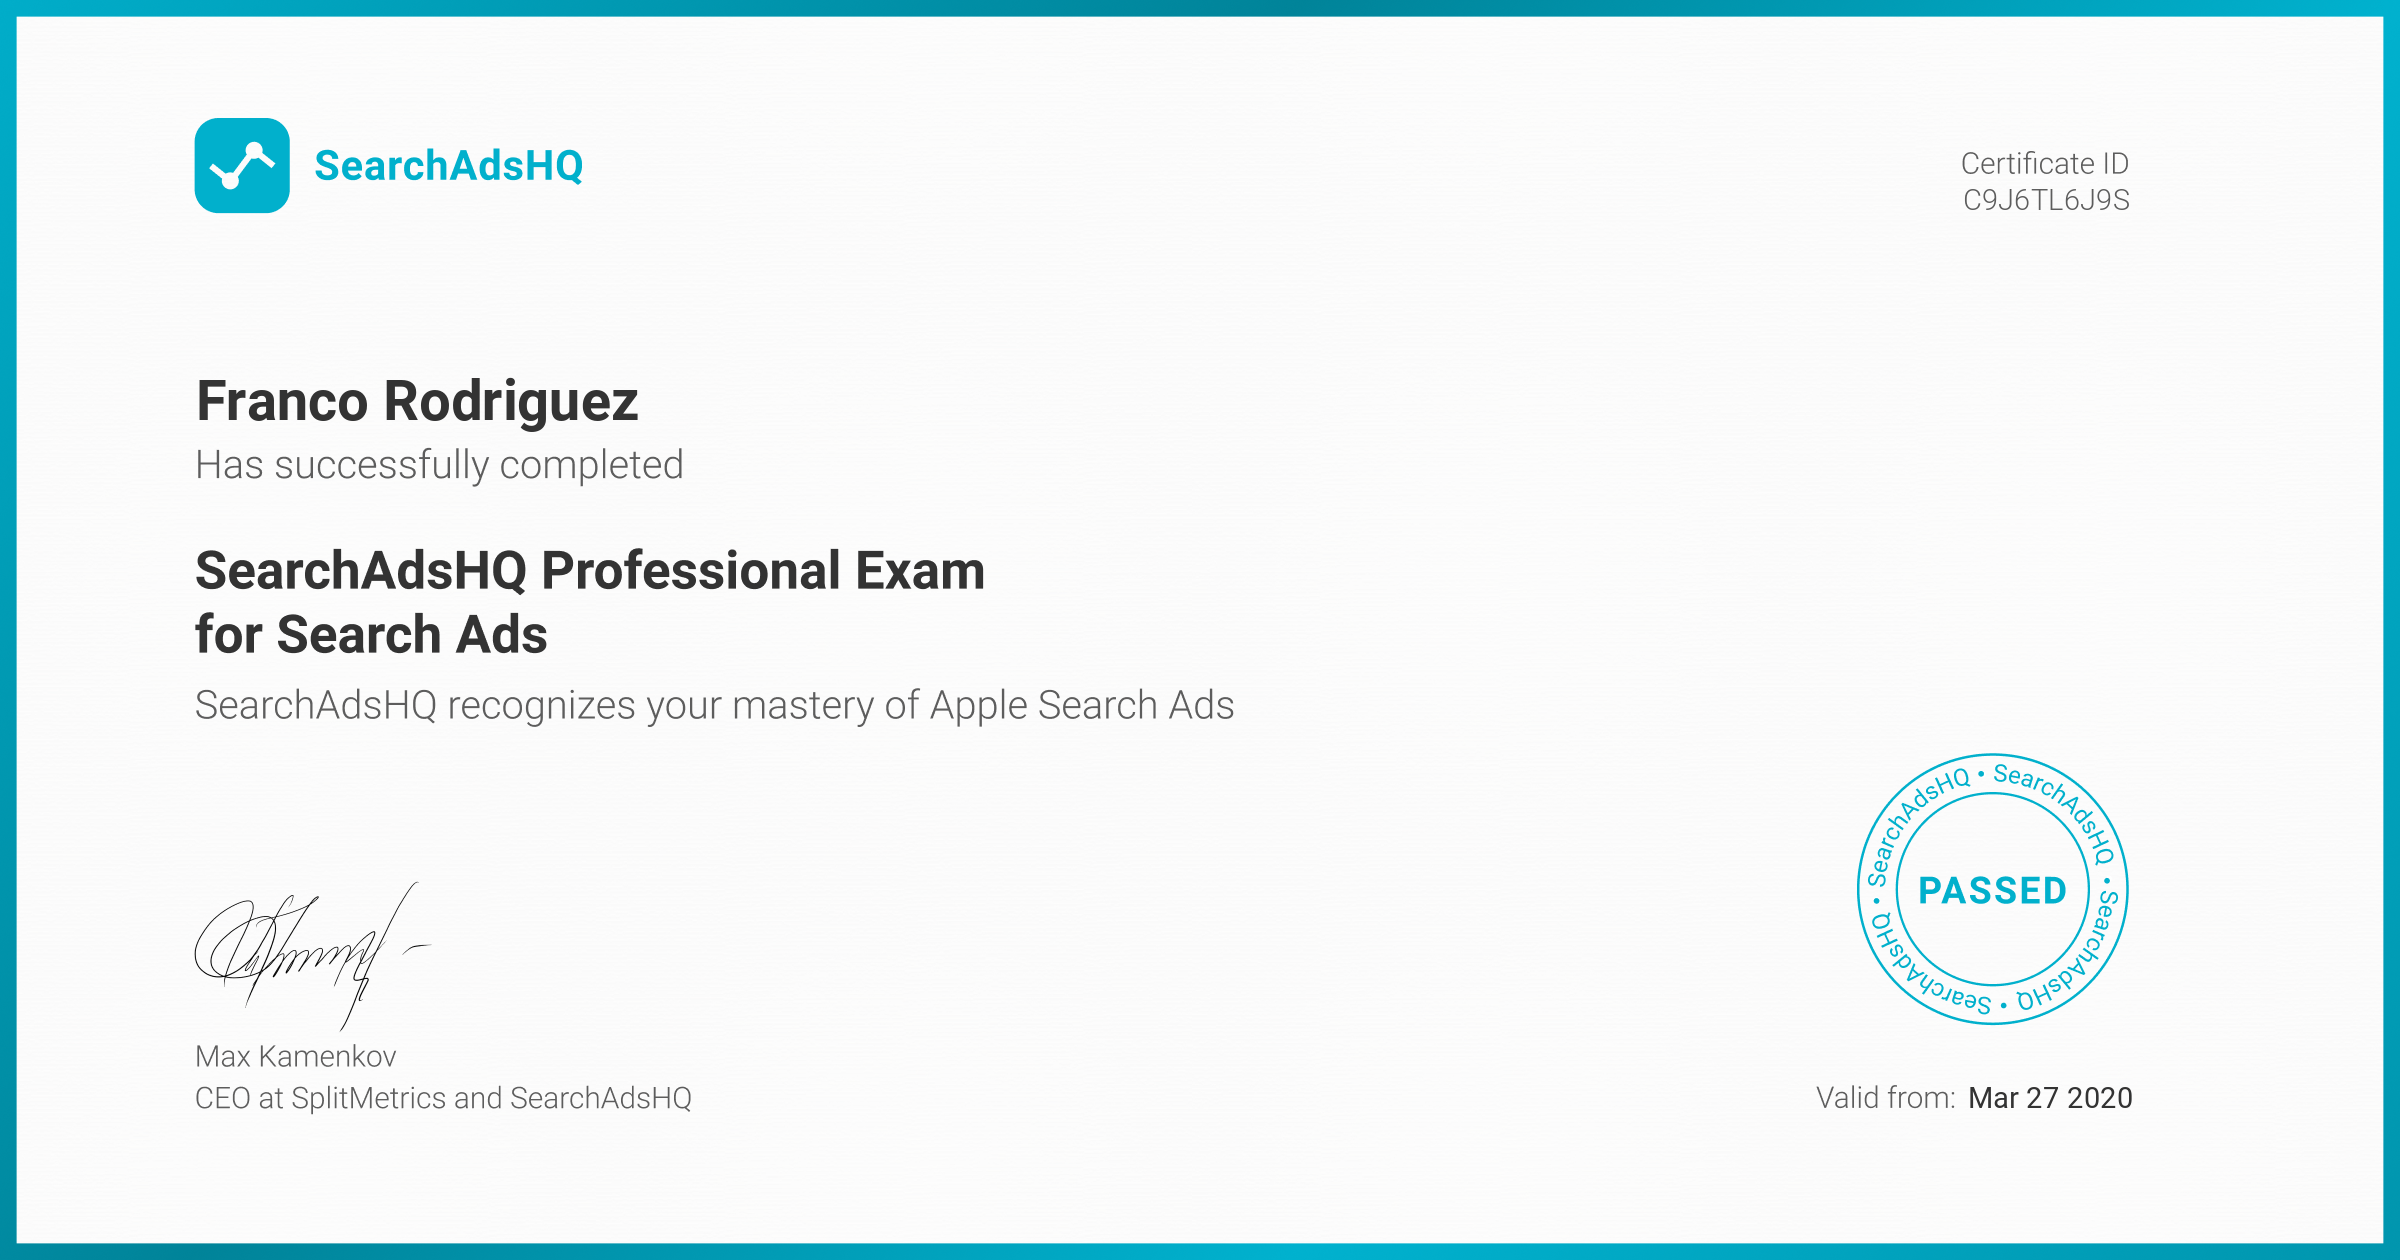 Certificate for Franco Rodriguez   SearchAdsHQ Professional Exam for Search Ads